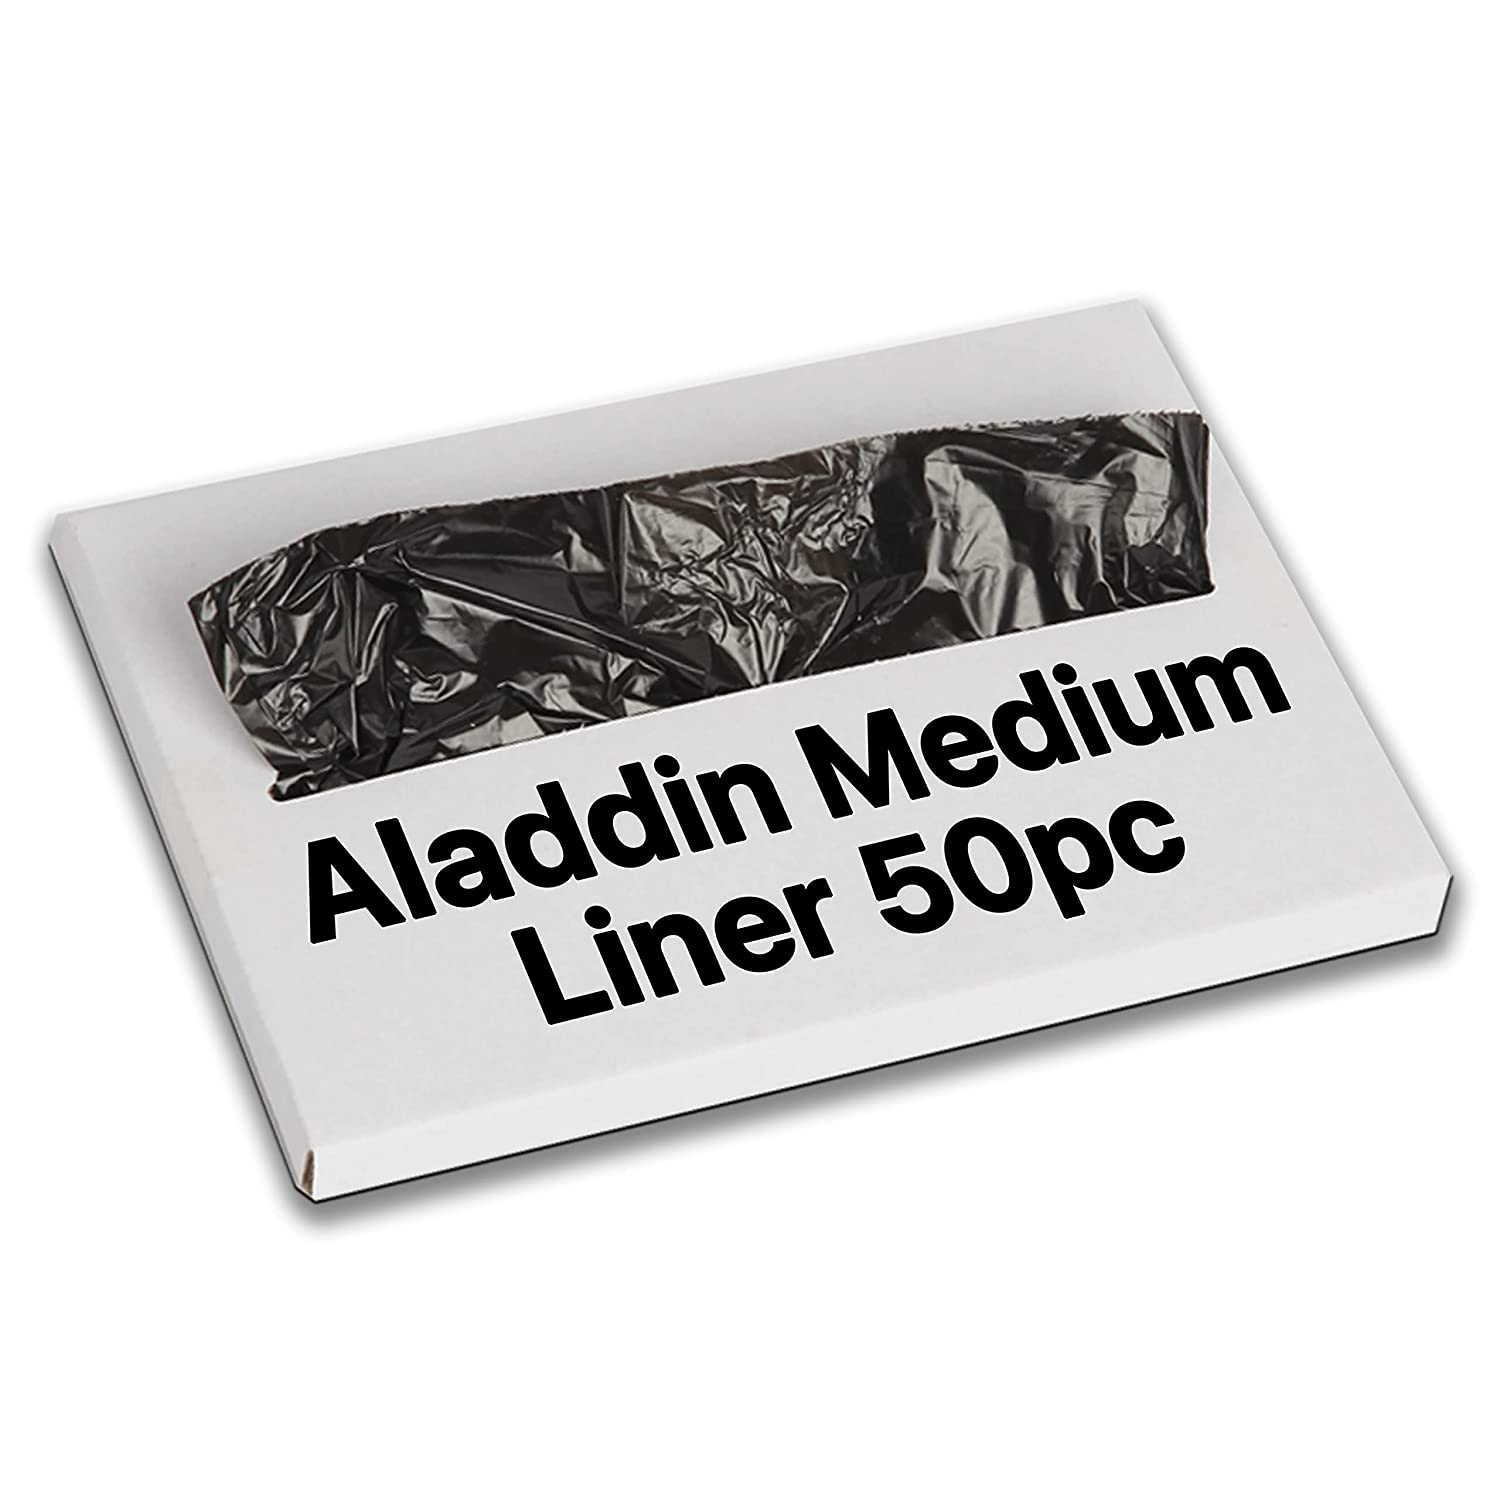 KMMOTORS Aladdin Liner Medium Outstanding Factory outlet 50pc